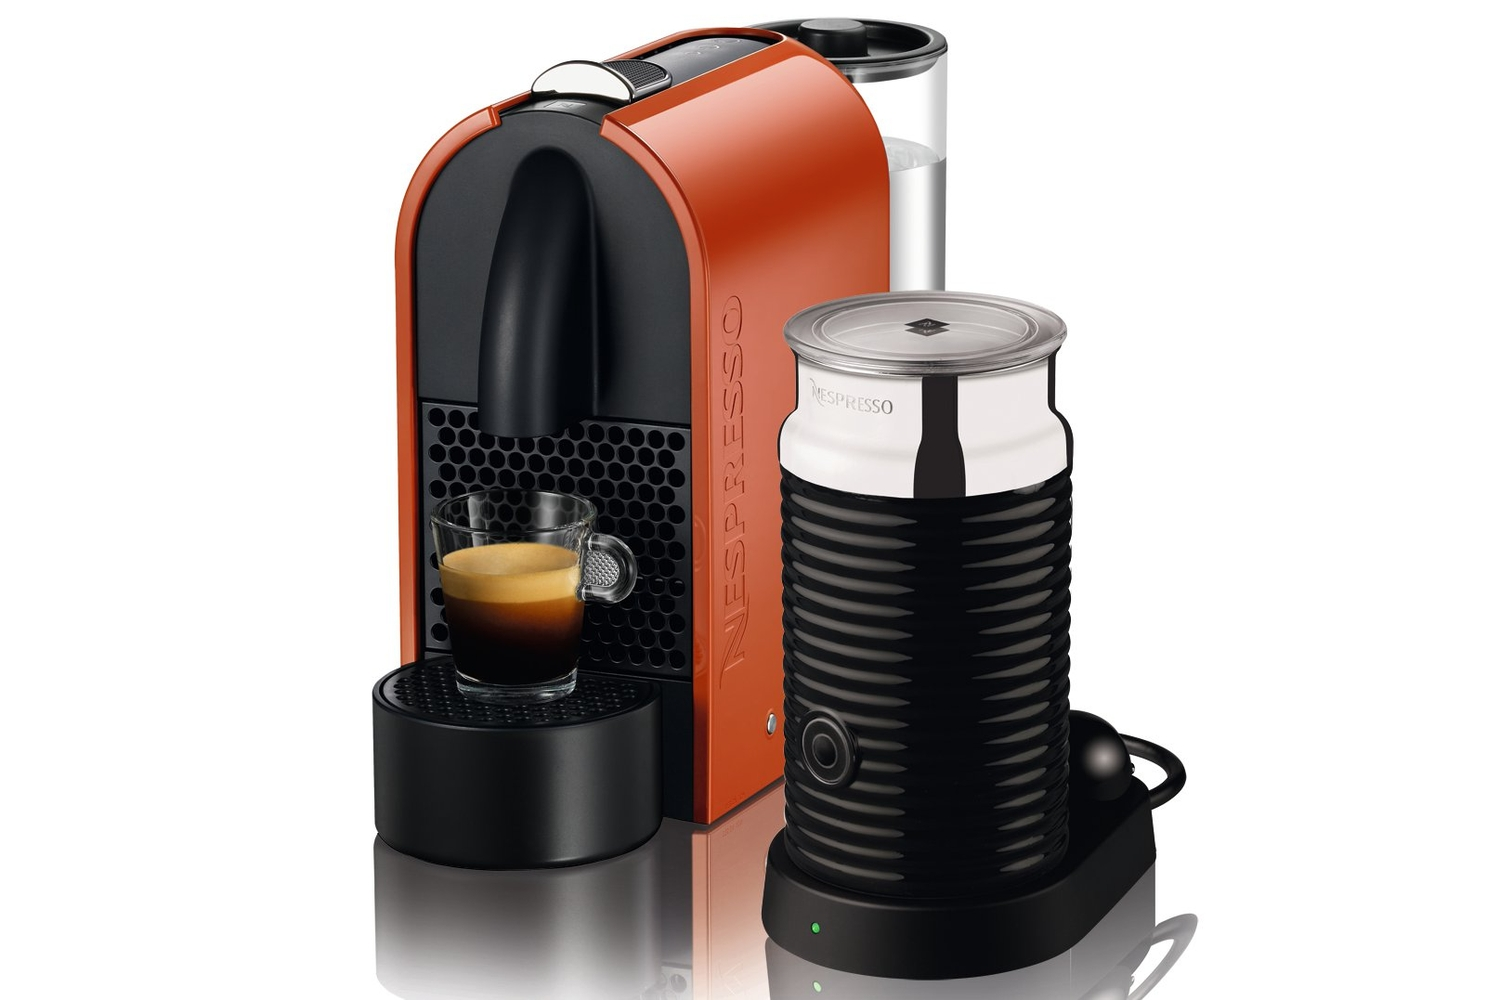 nespresso u review the nespresso u is the baby of the. Black Bedroom Furniture Sets. Home Design Ideas